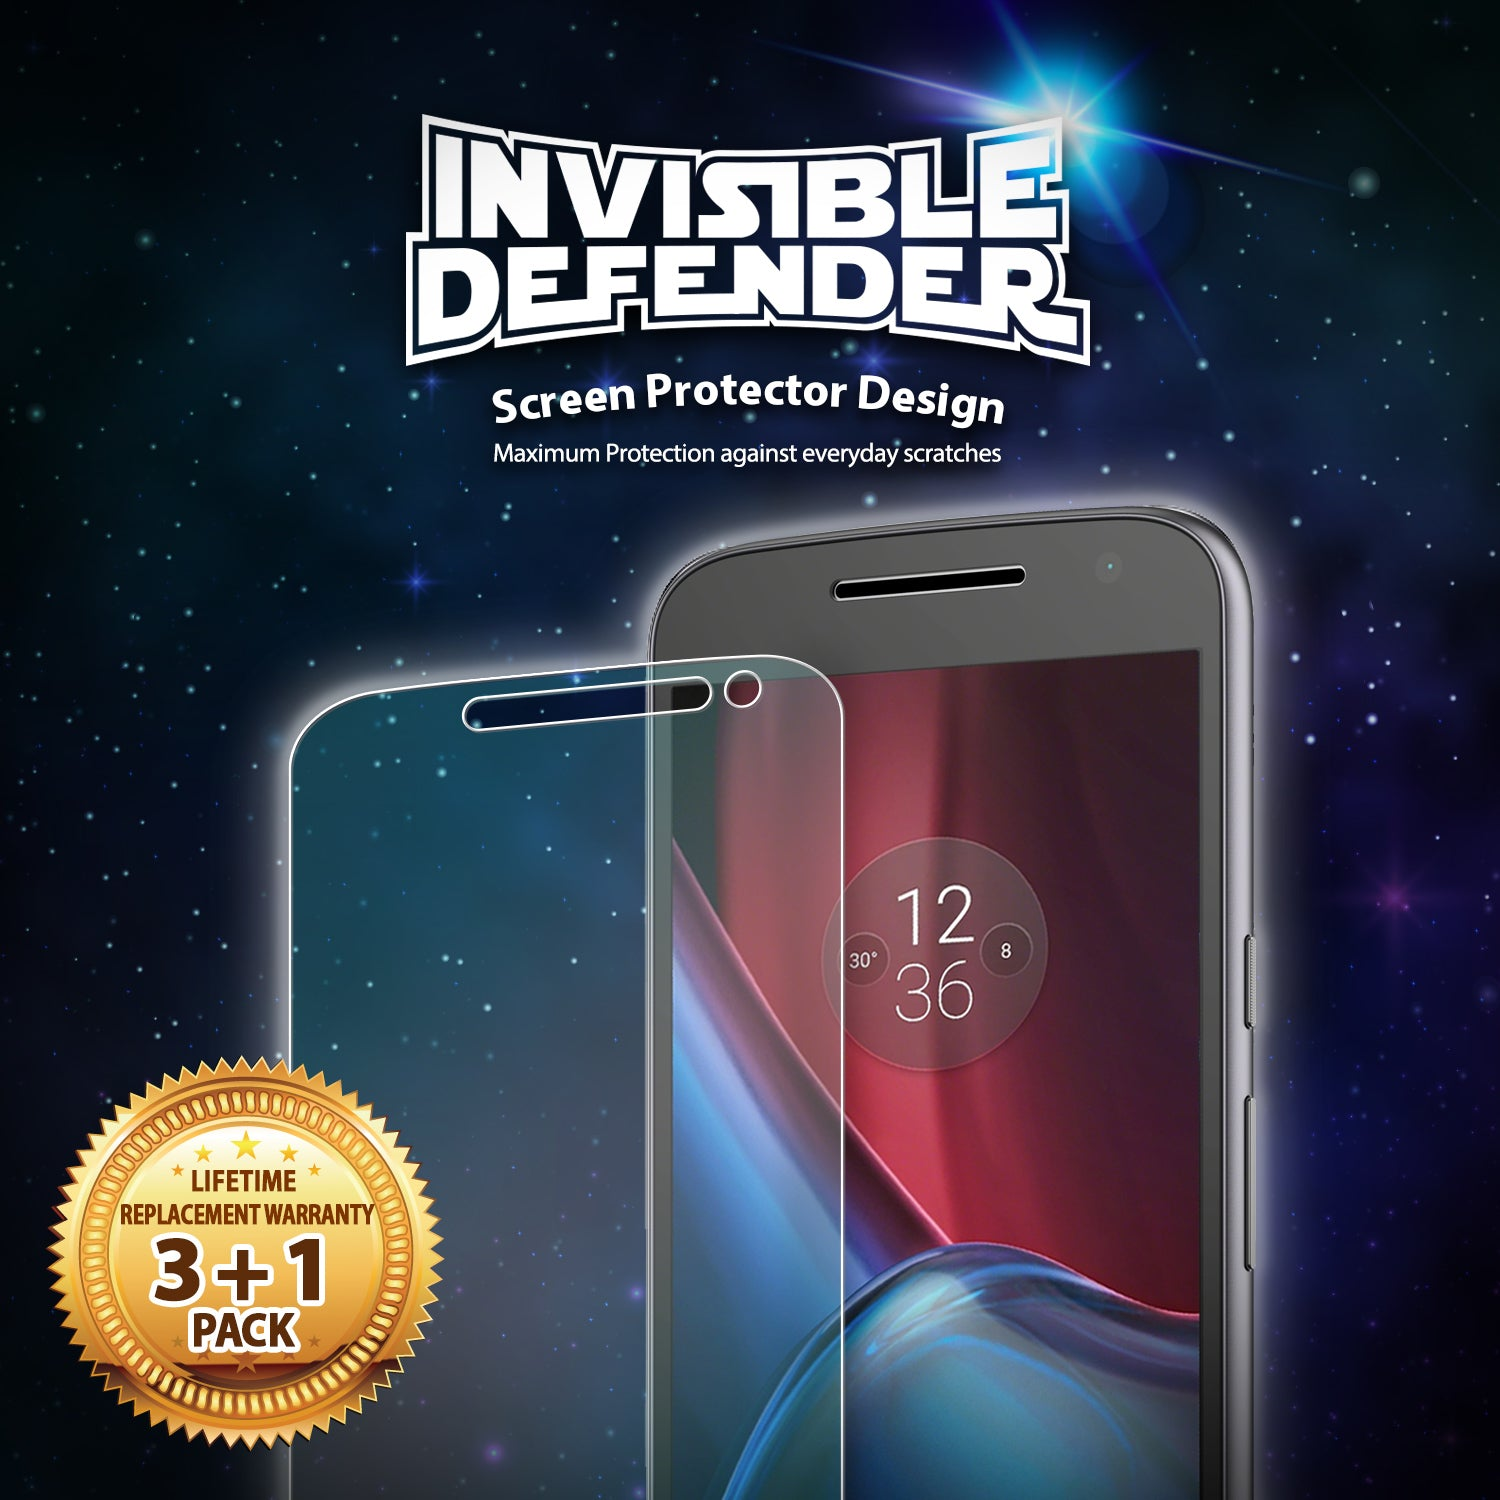 ringke invisible defender film screen protector for moto g4 plus